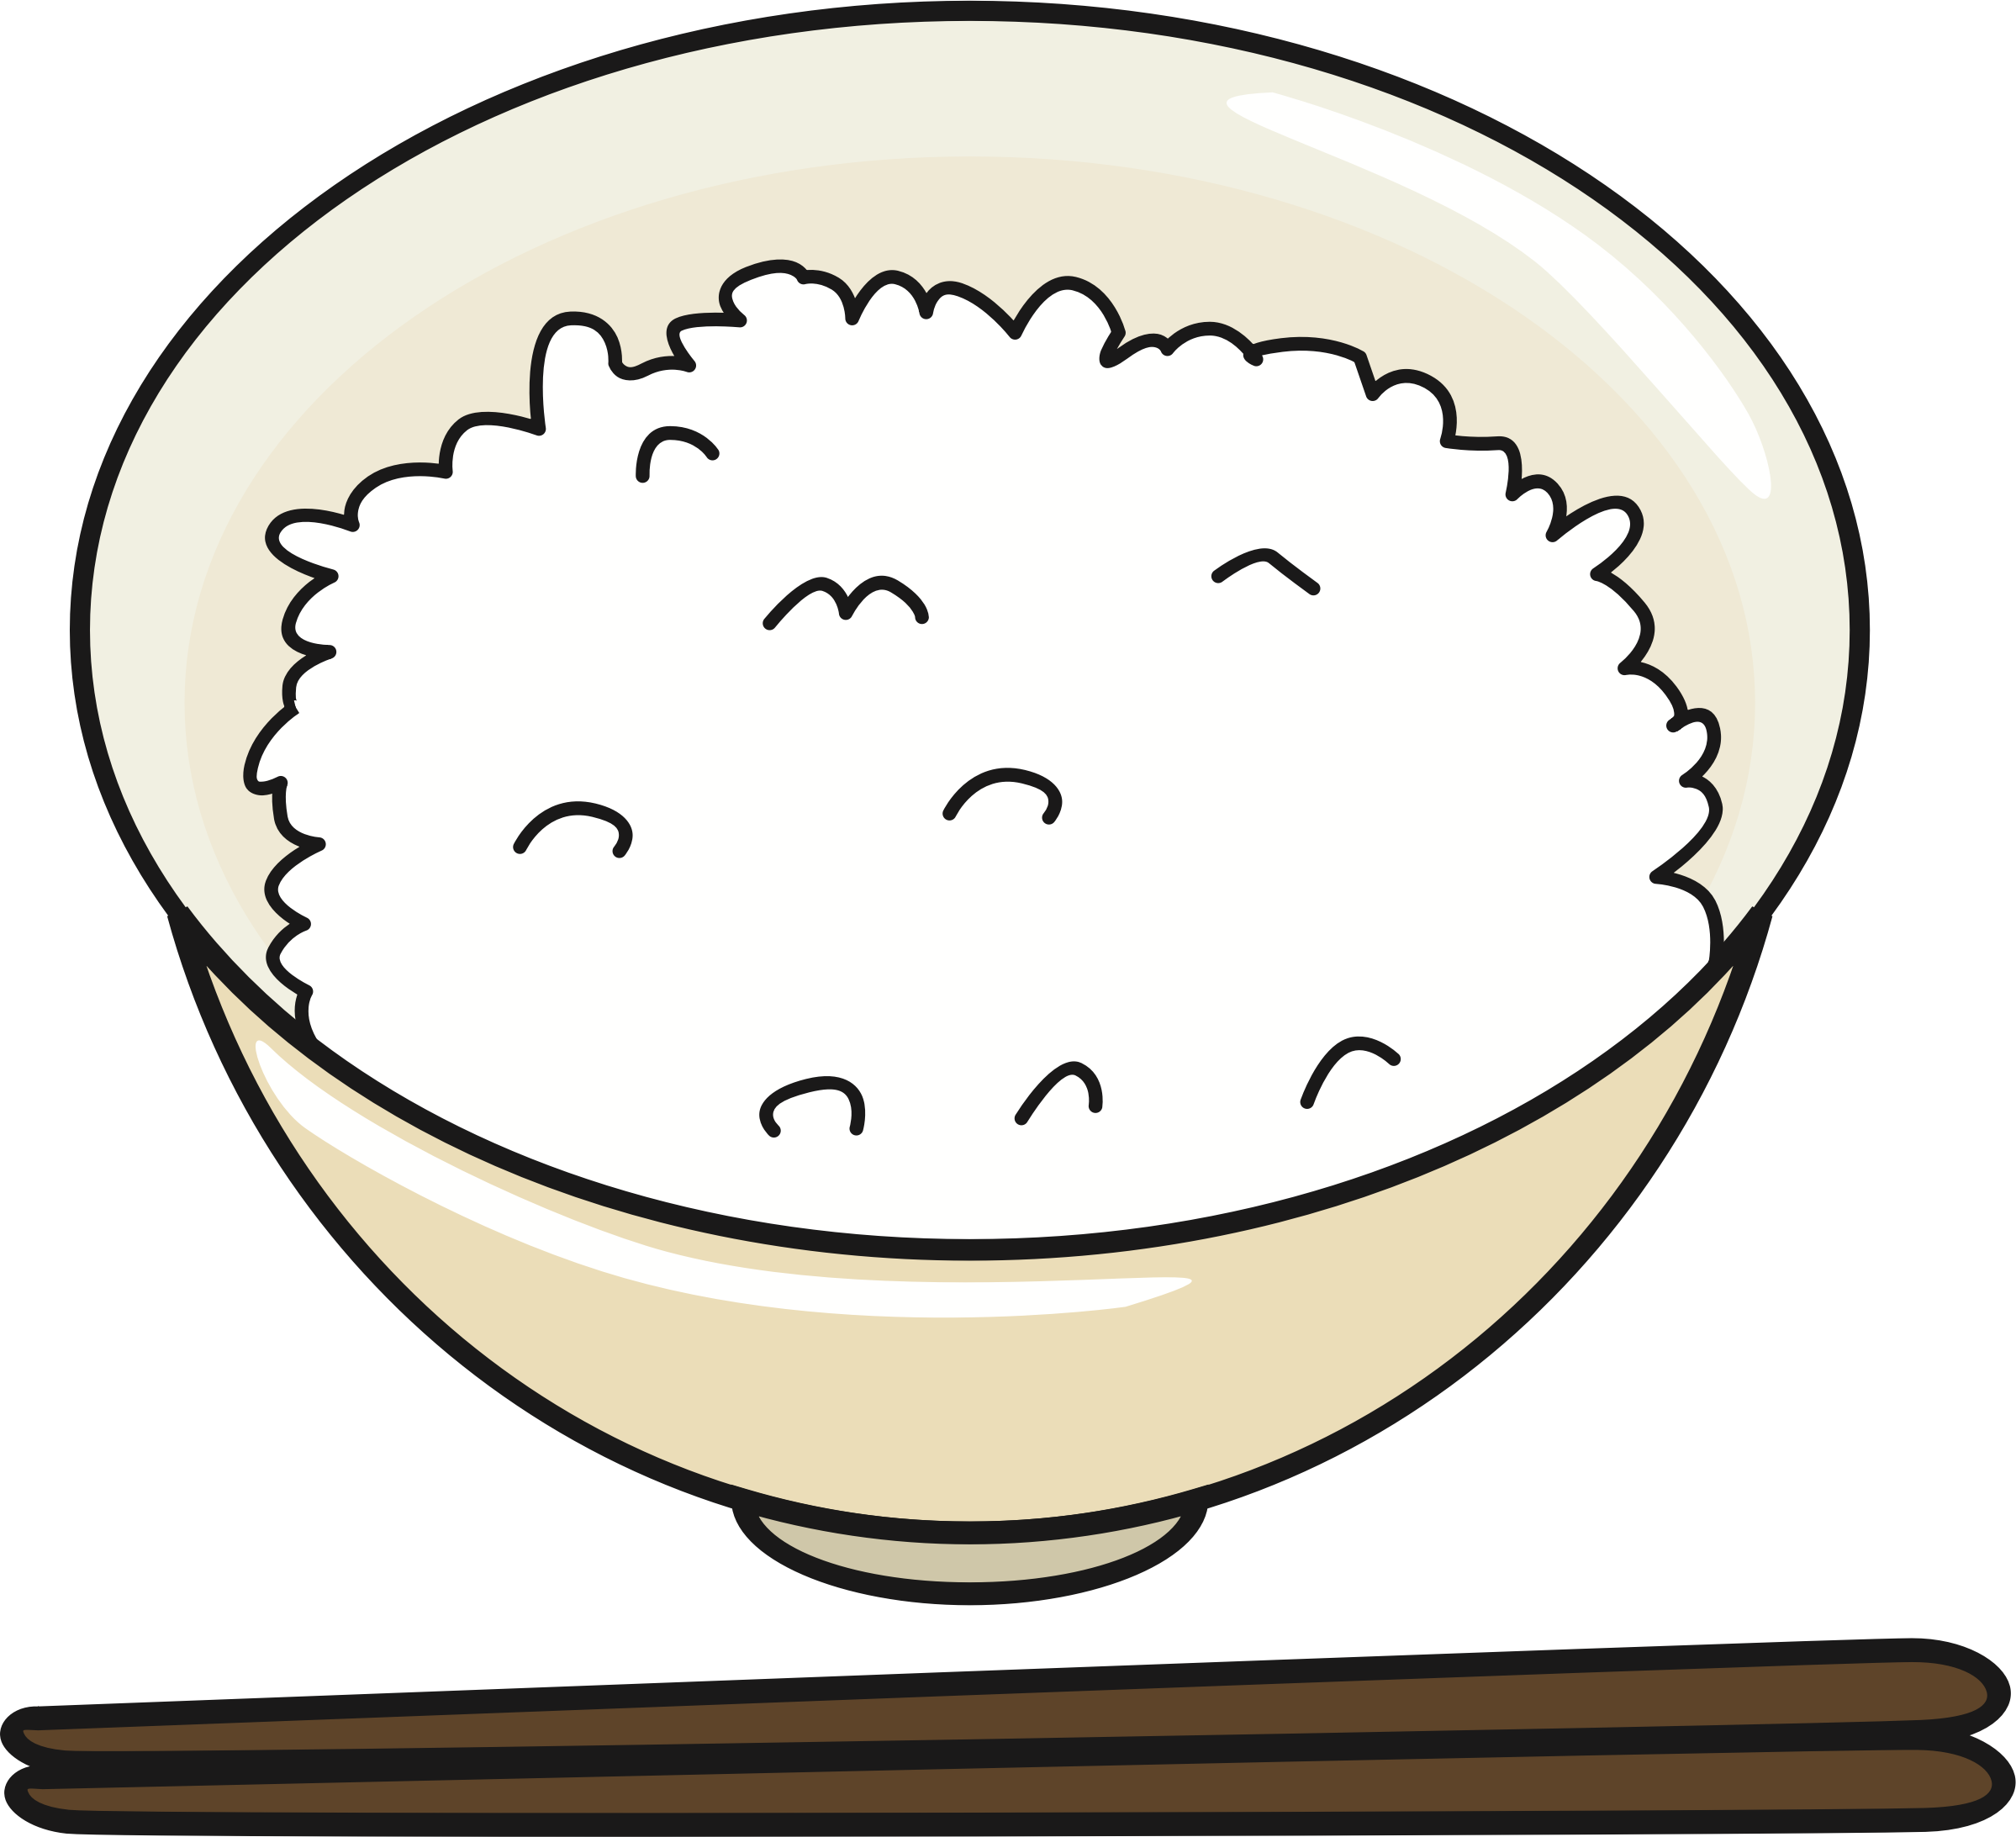 image transparent library Rice clipart. Bowl of big image.